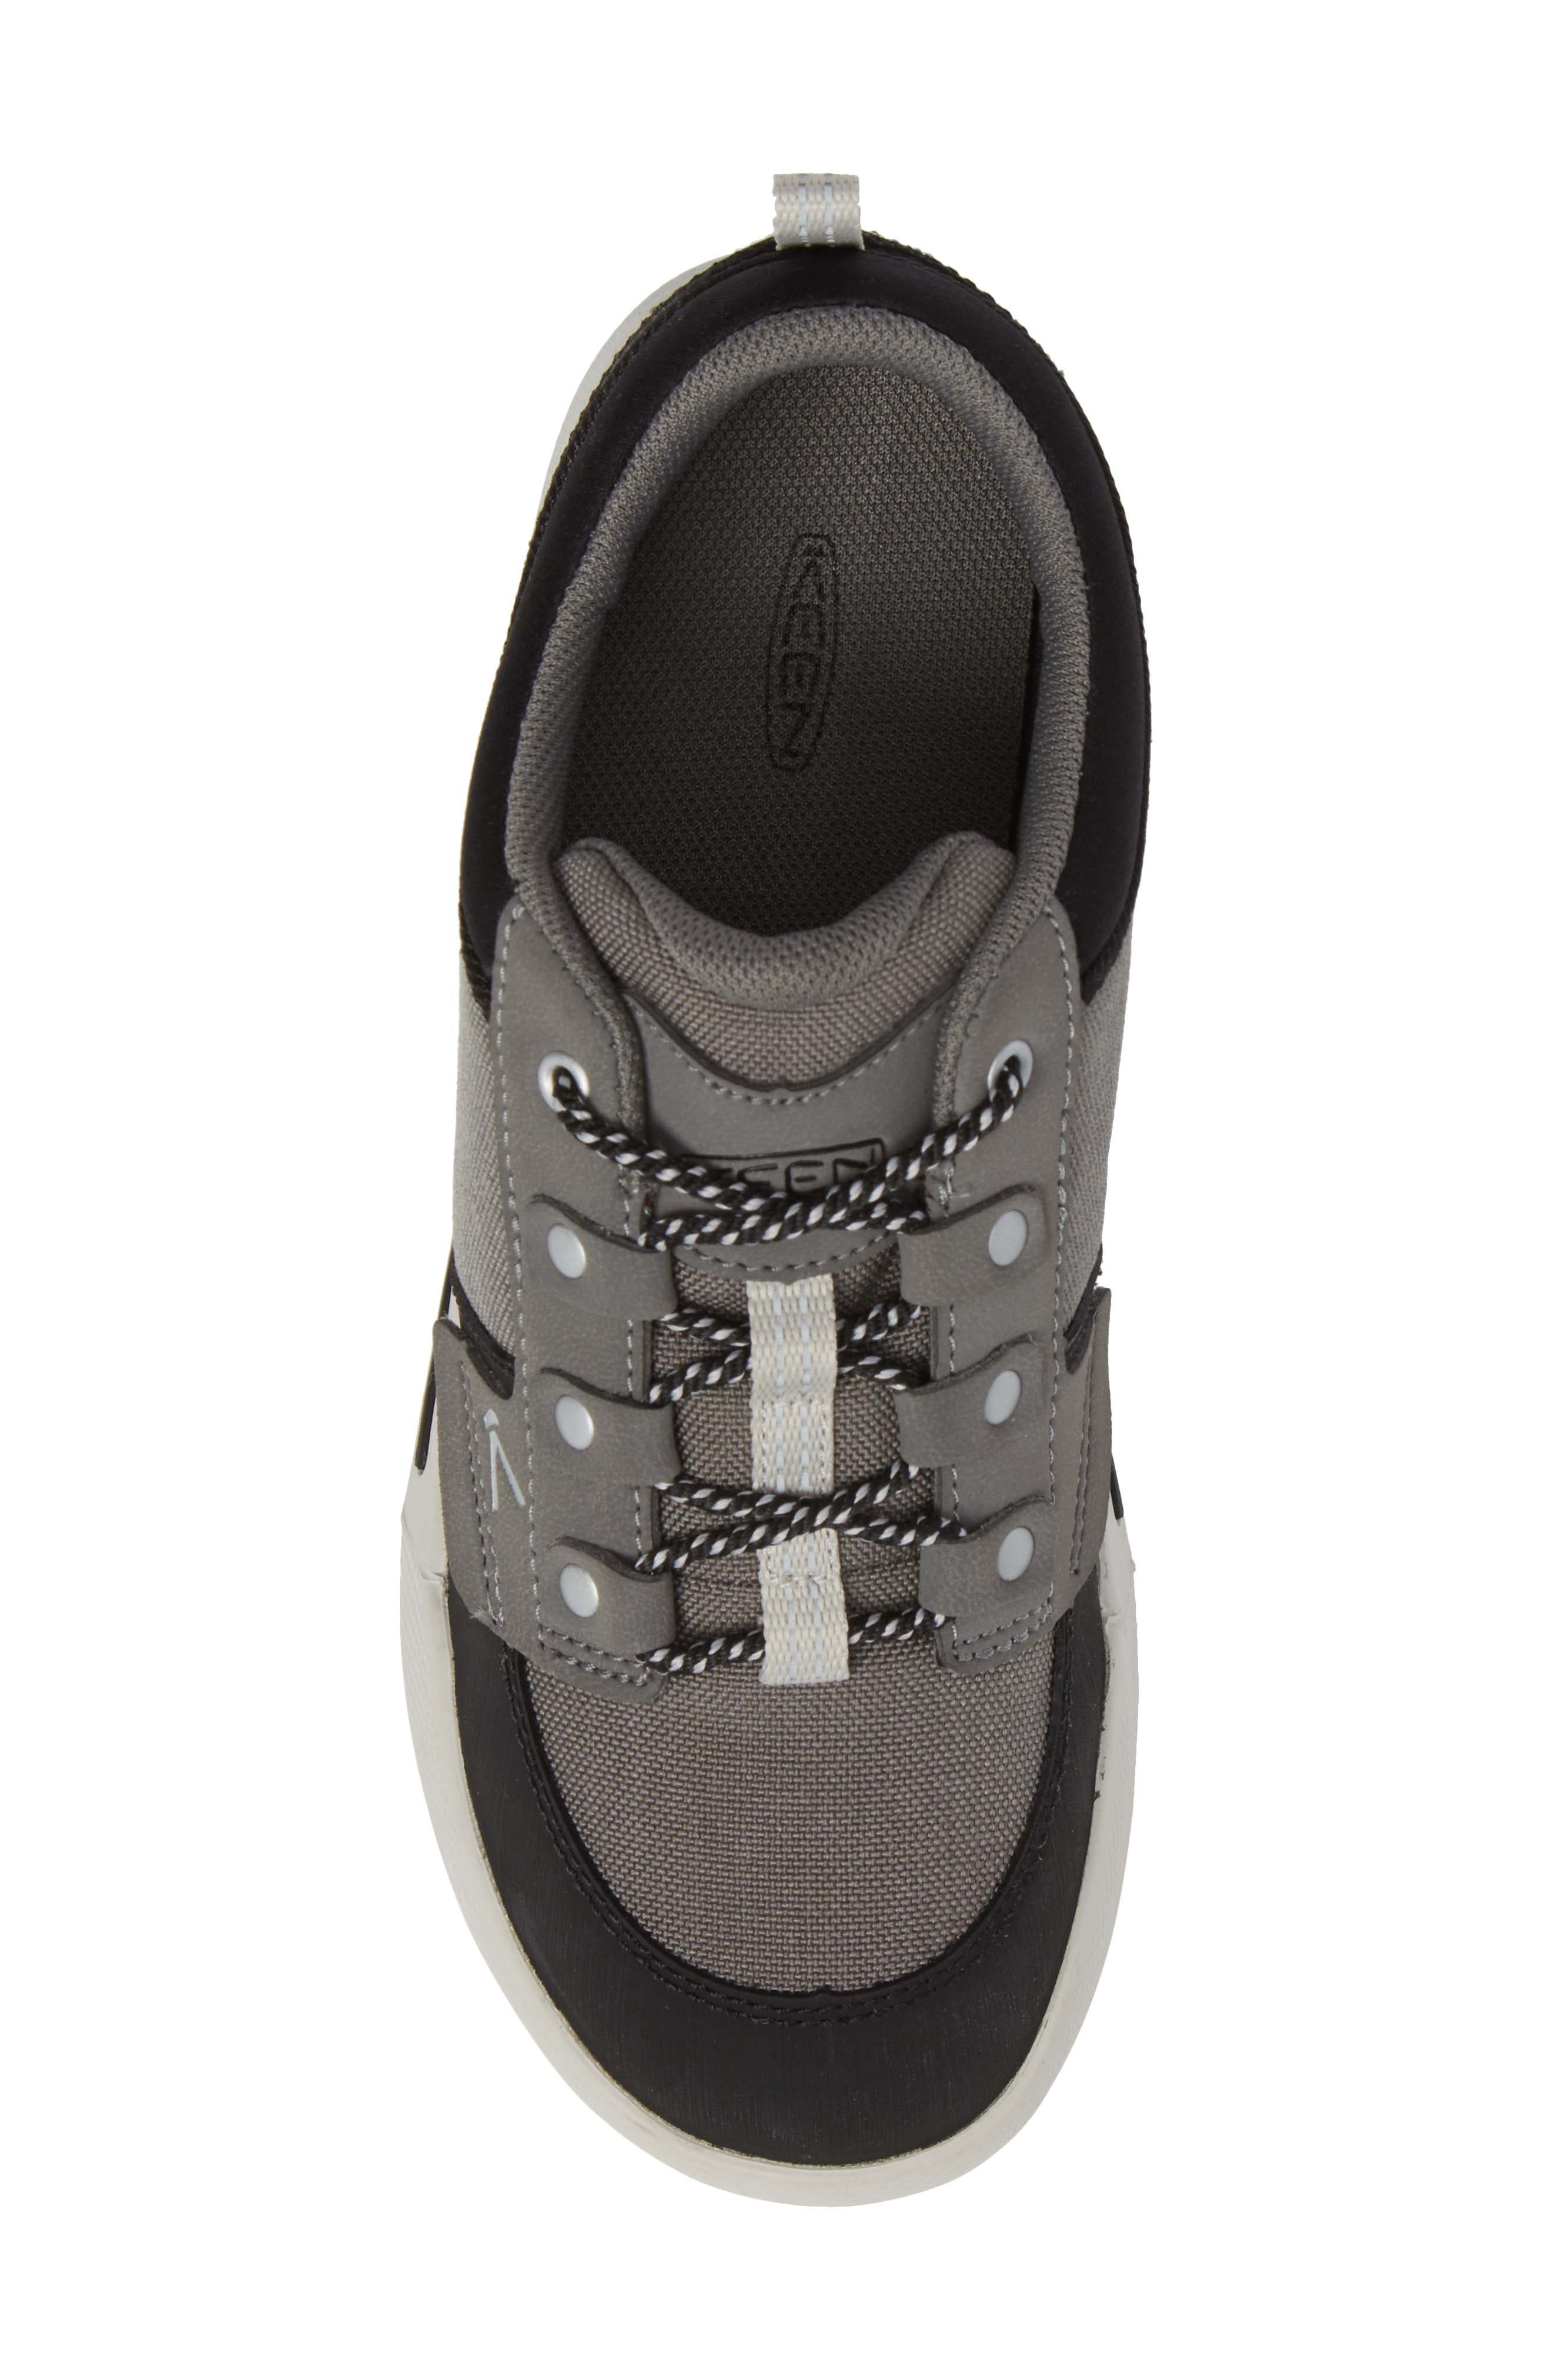 Encanto Wesley Sneaker,                             Alternate thumbnail 5, color,                             Gargoyle/ Black